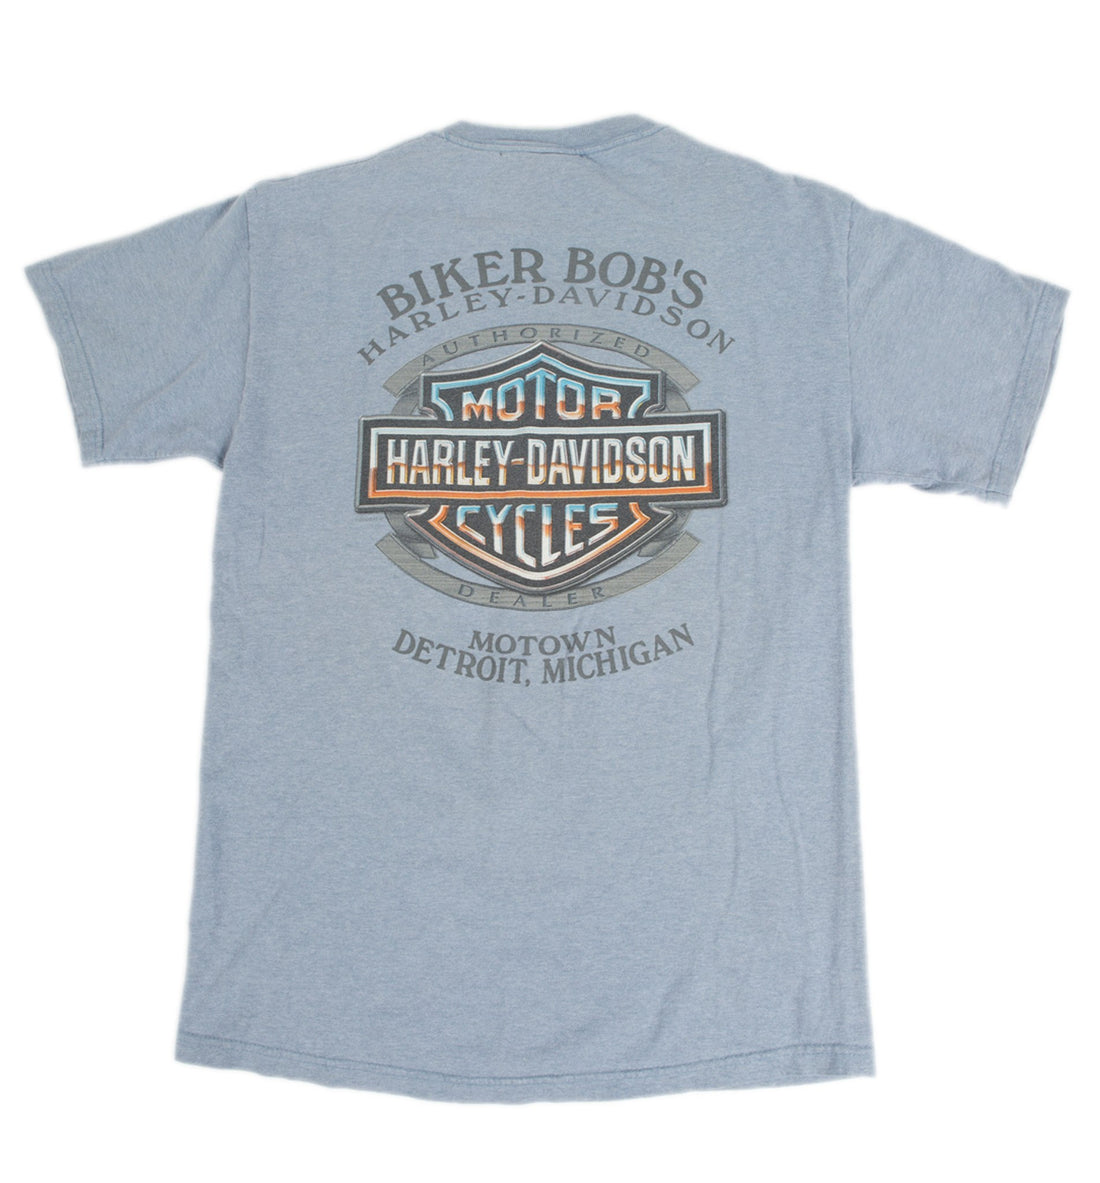 Vintage Gray Harley Davidson Tee - Vintage - Iron and Resin